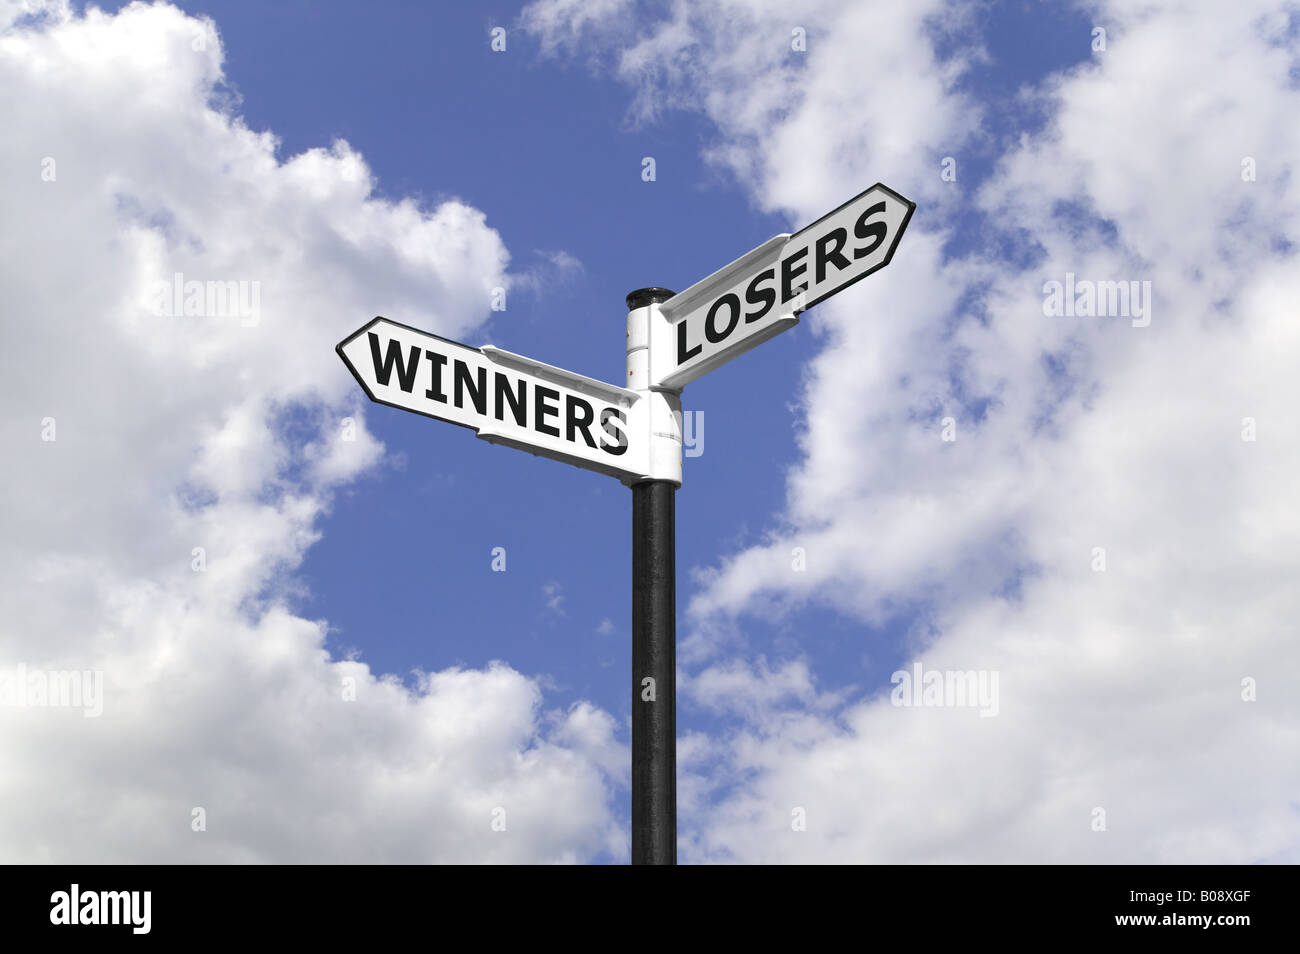 Winners and Losers on a signpost against a blue cloudy sky - Stock Image